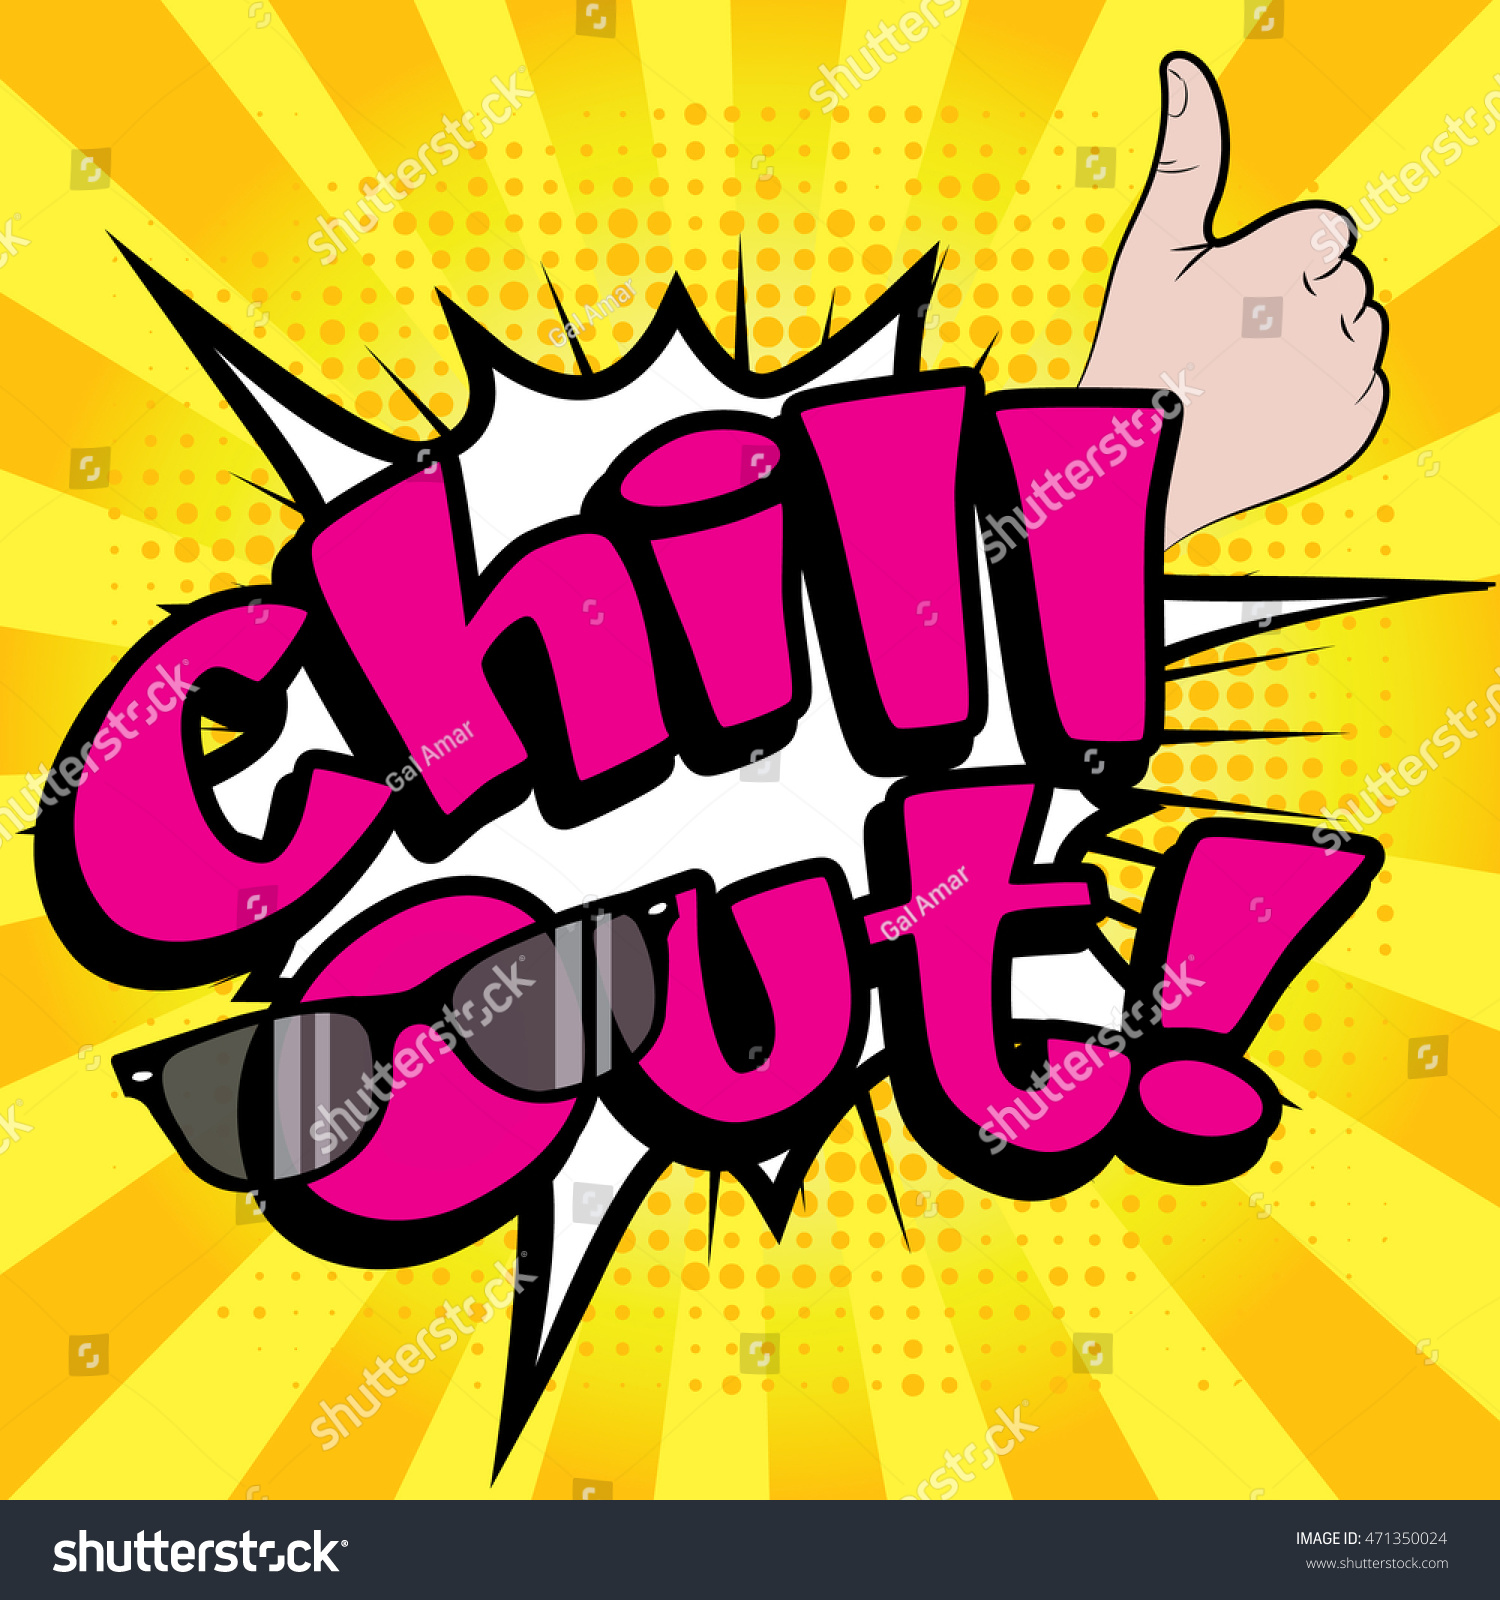 Chill Out Clip Art